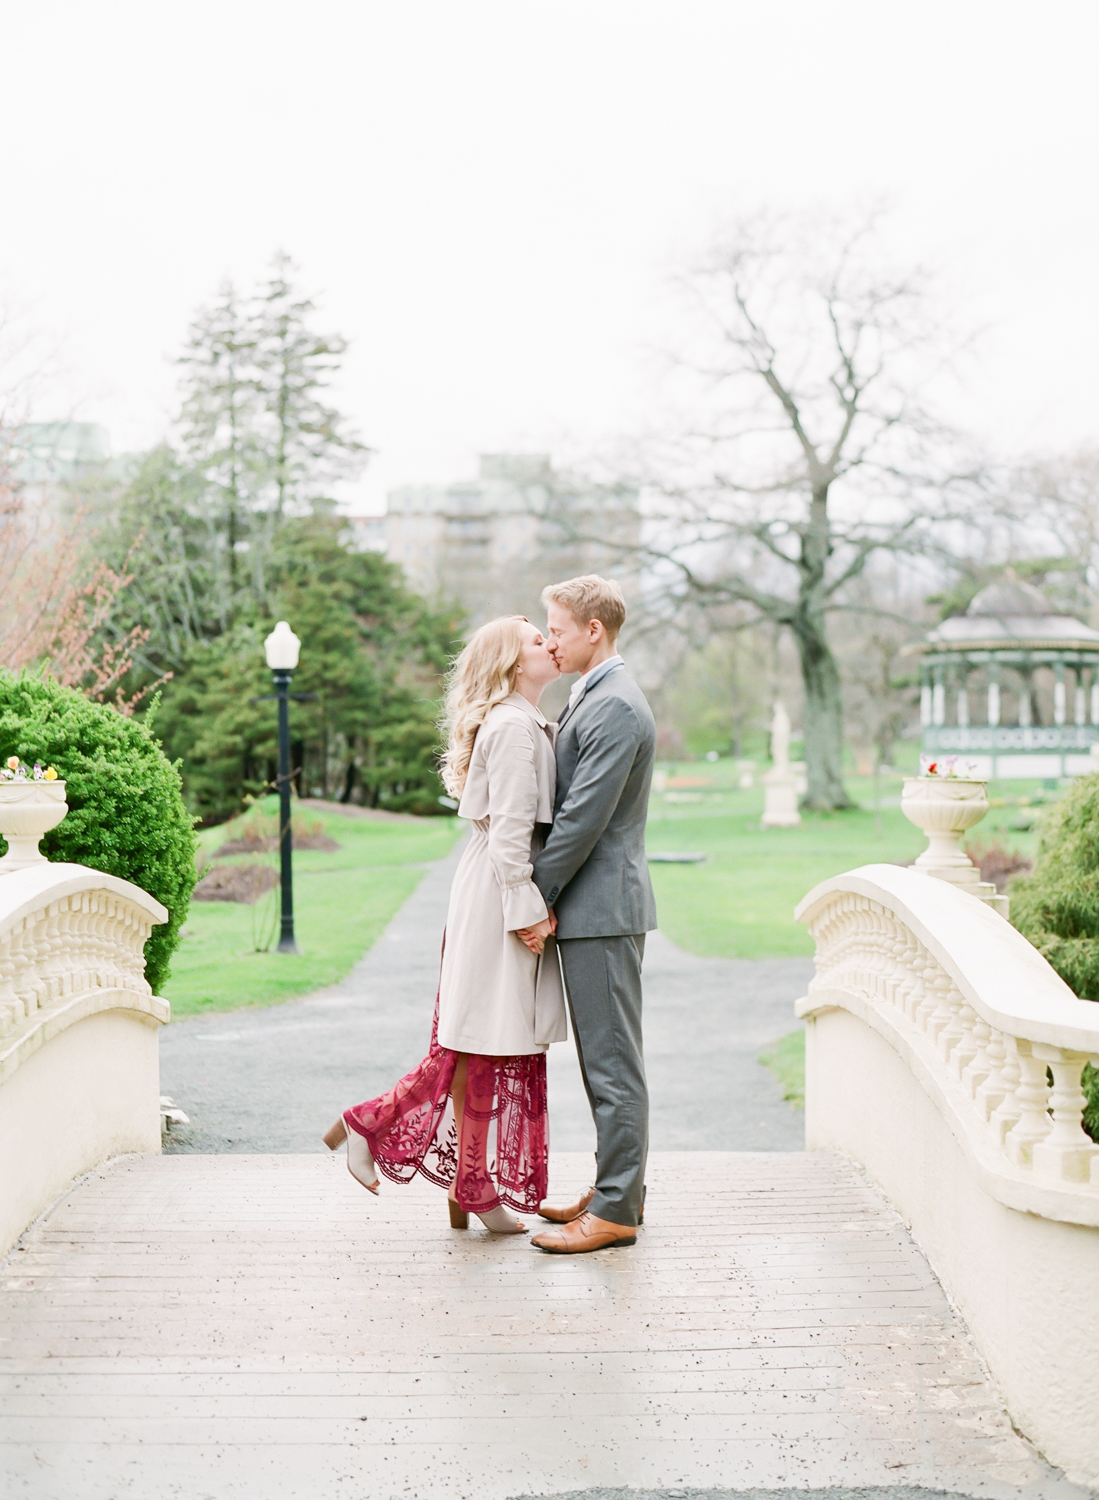 Jacqueline Anne Photography - Amanda and Brent-40.jpg